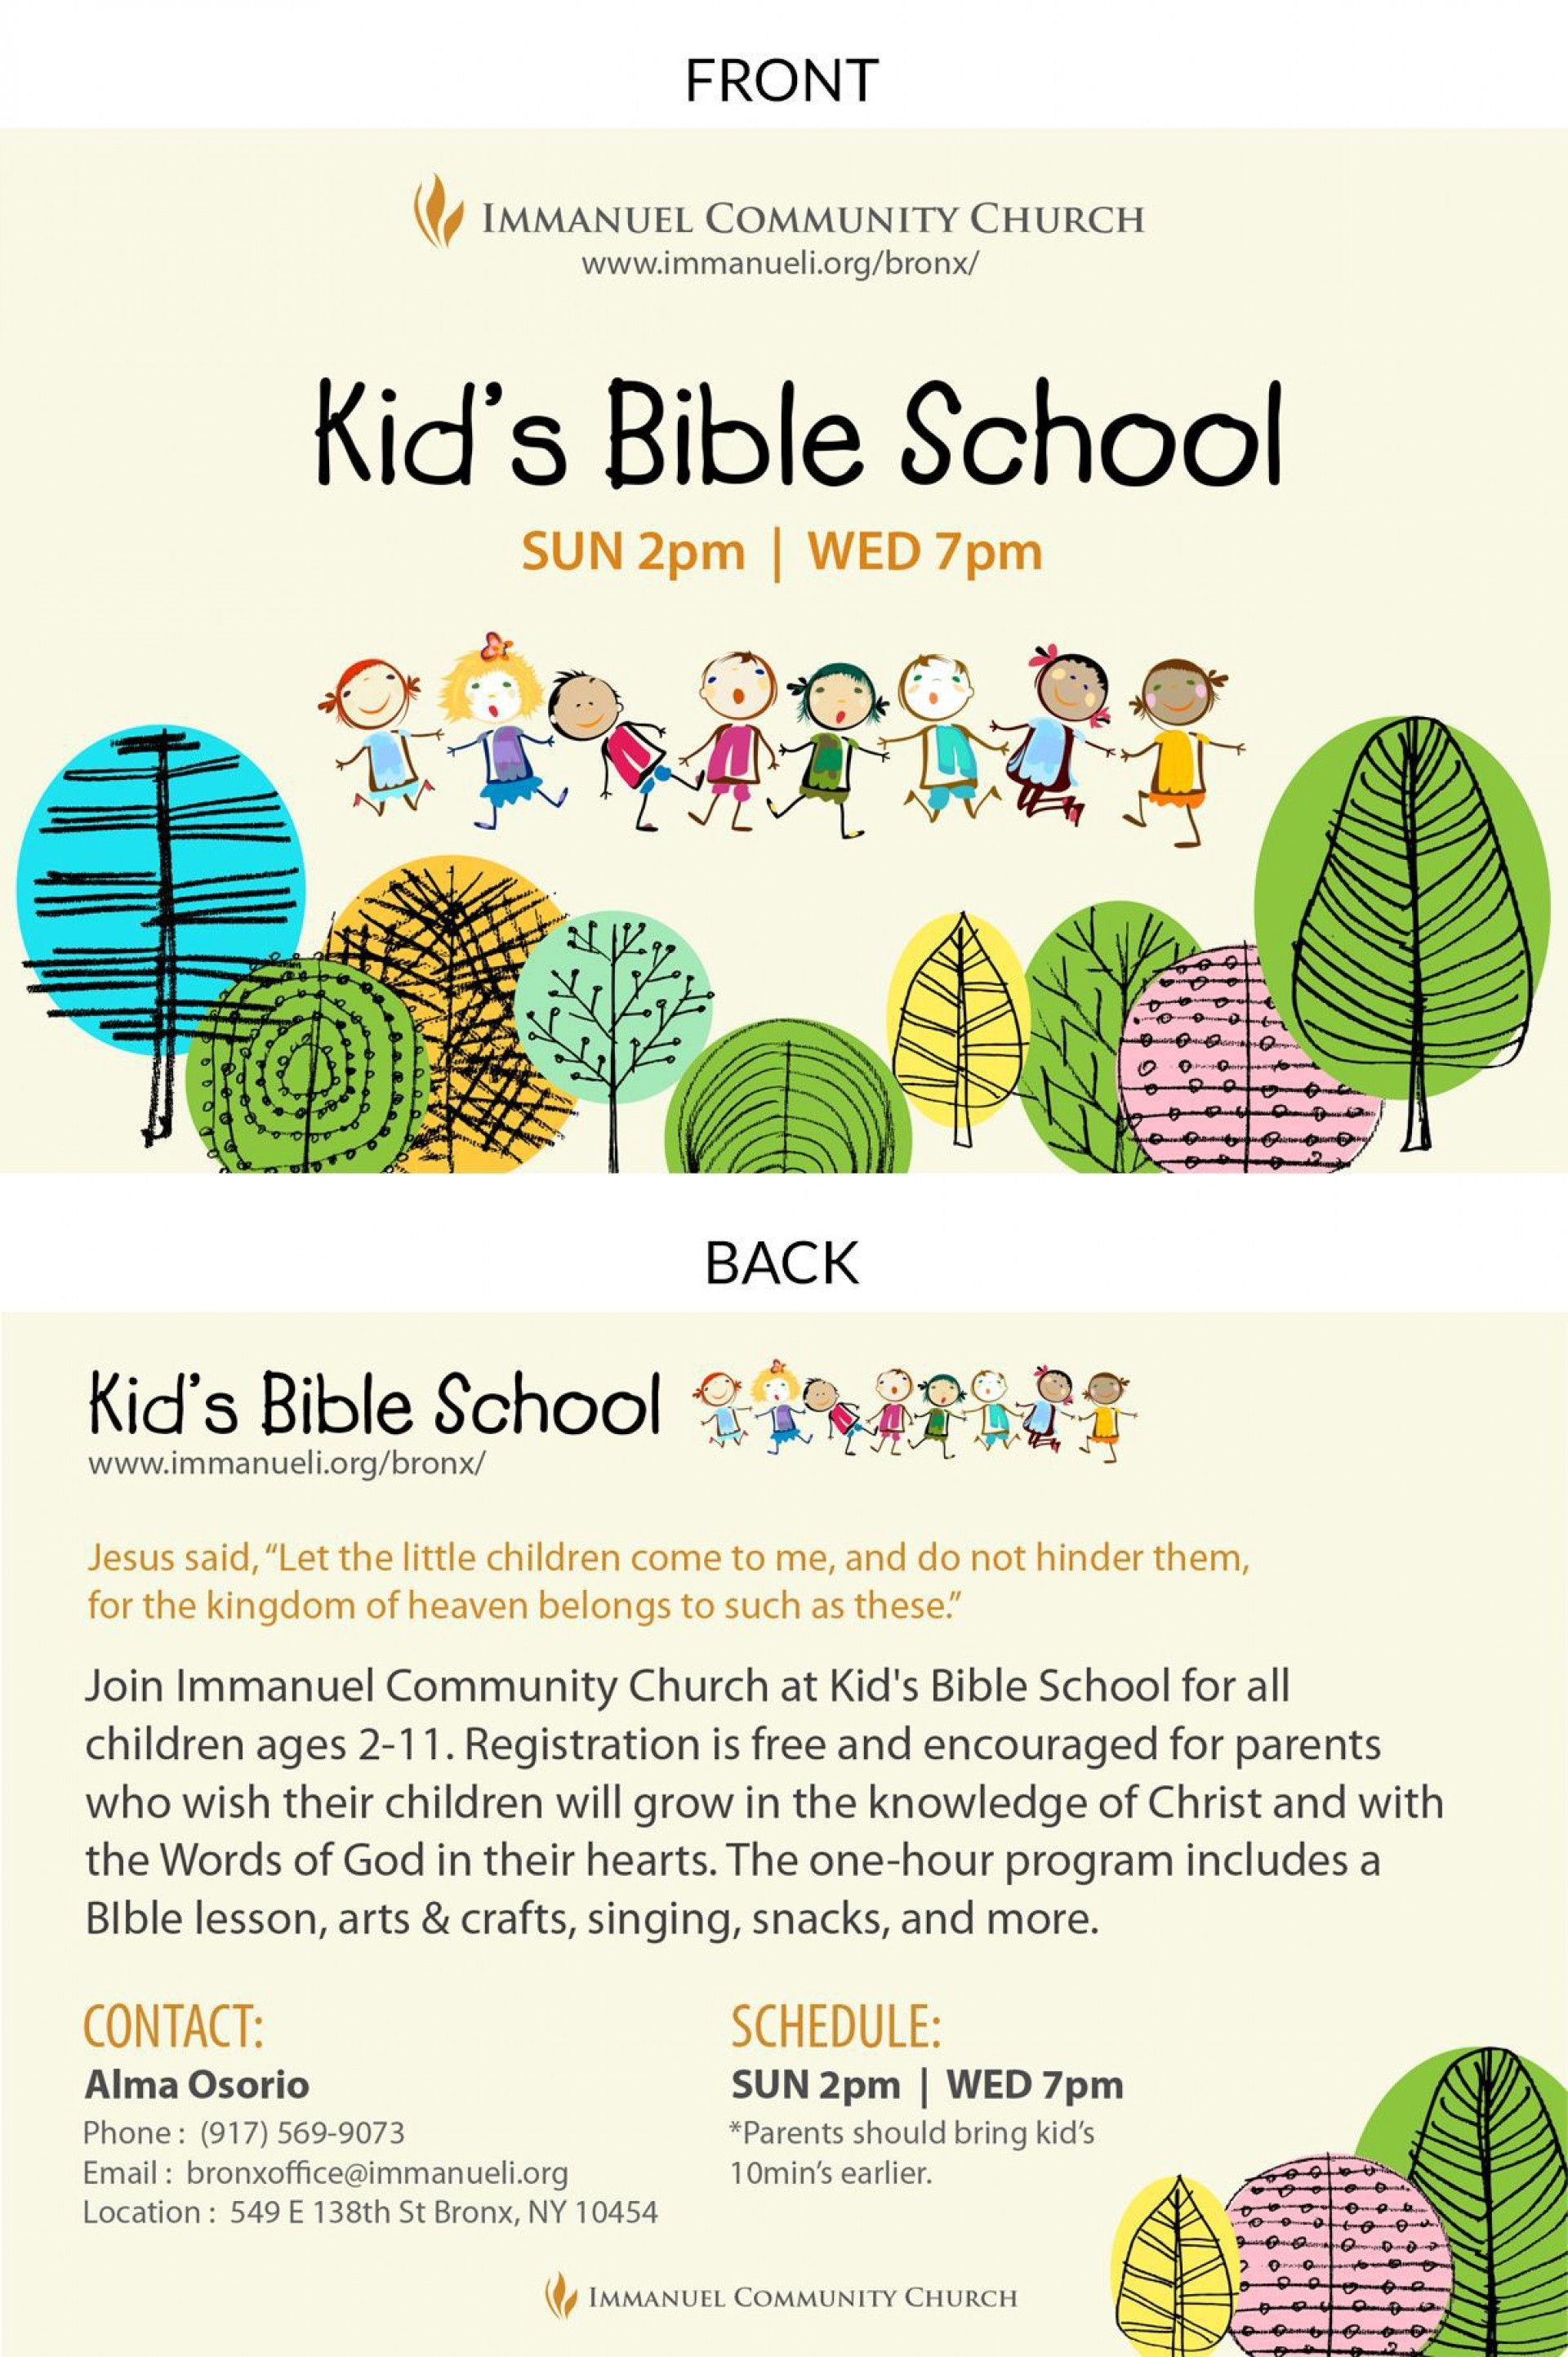 007 Awful Free Sunday School Flyer Template High Resolution  Templates1920